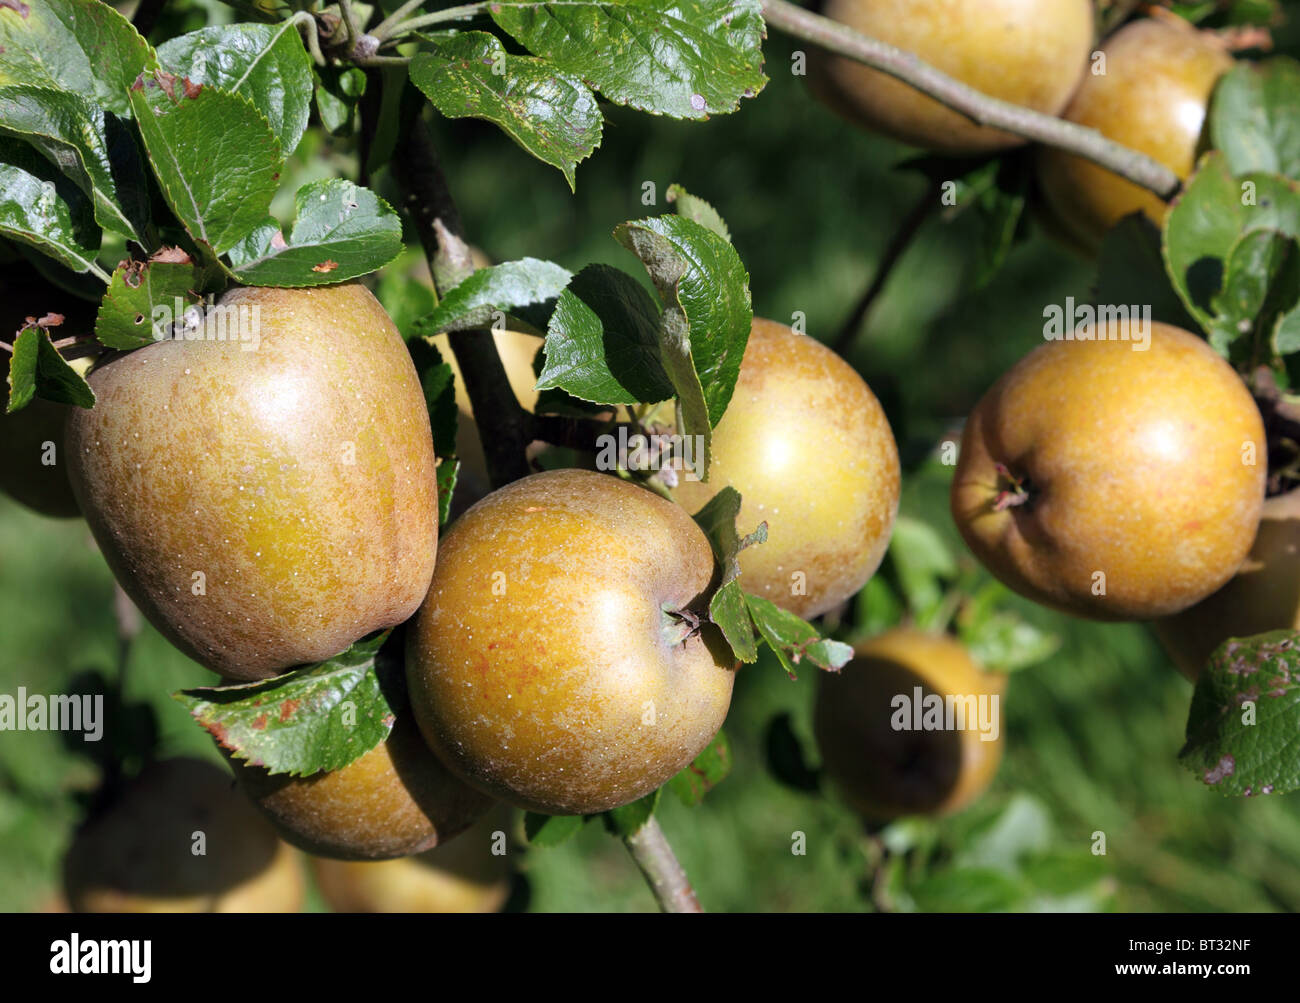 Russet apples ripening on the tree - Stock Image